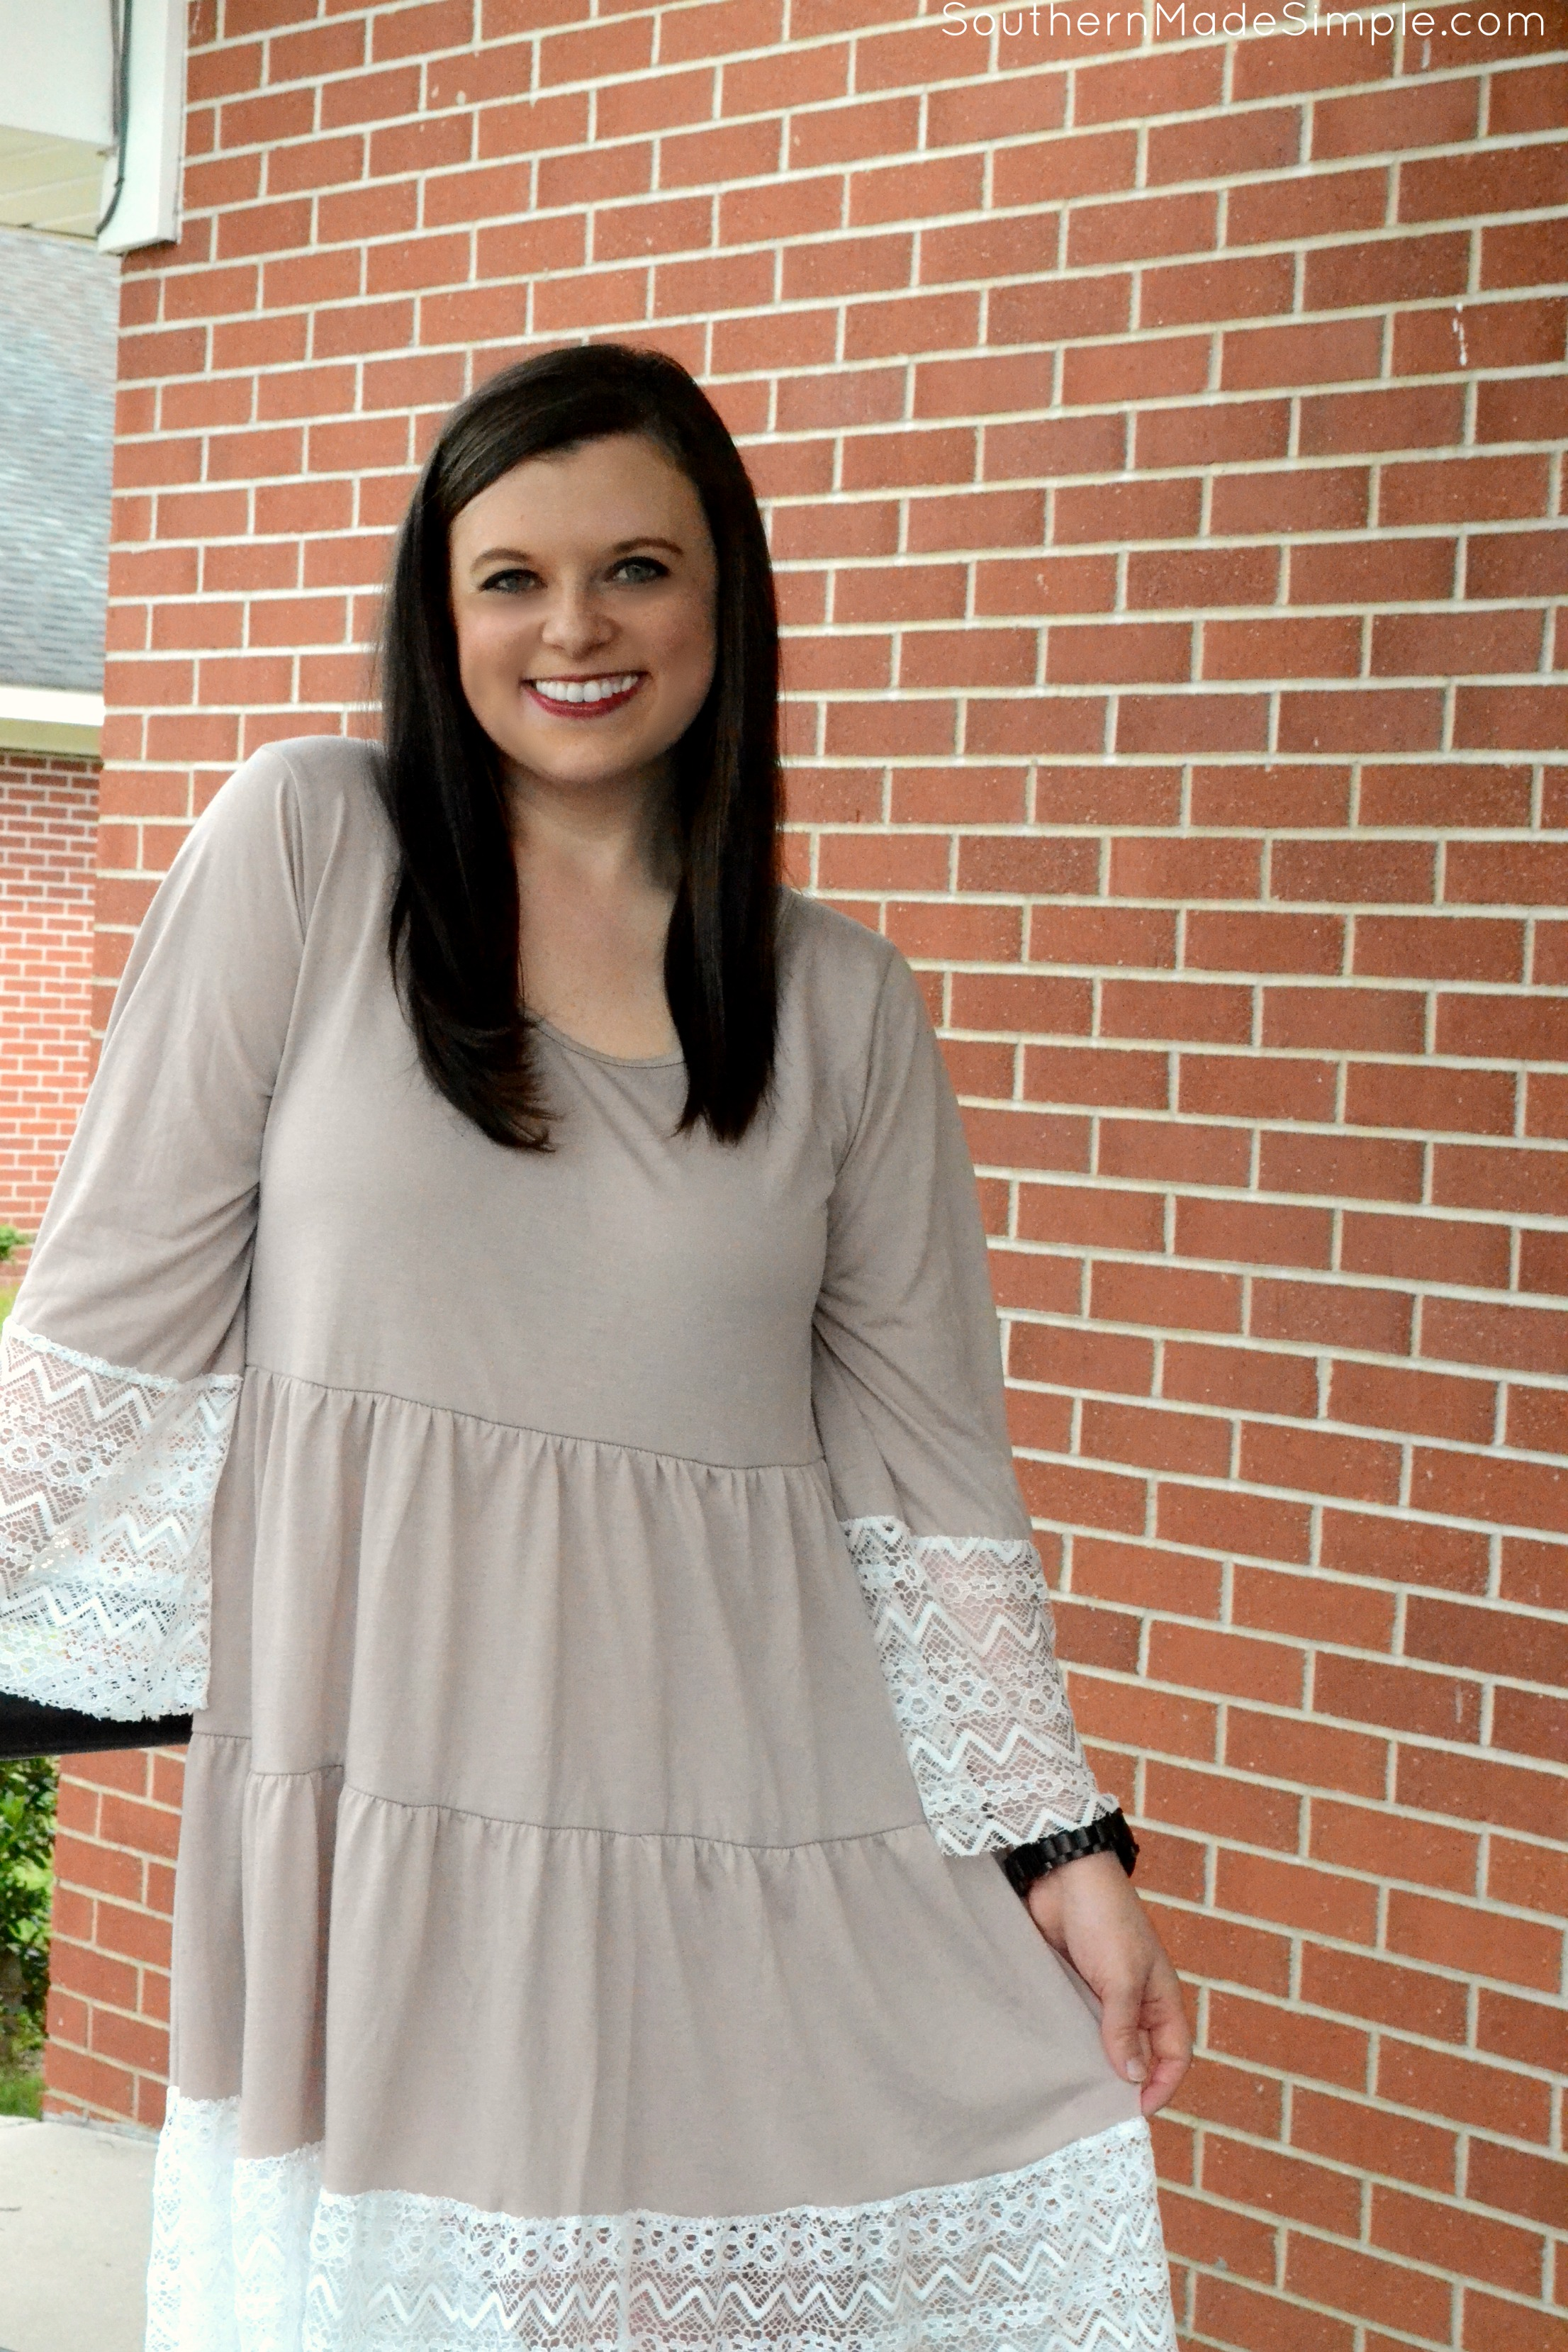 How to update your wardrobe for less with Swap.com #momswhoswap #swaphowushop #ad